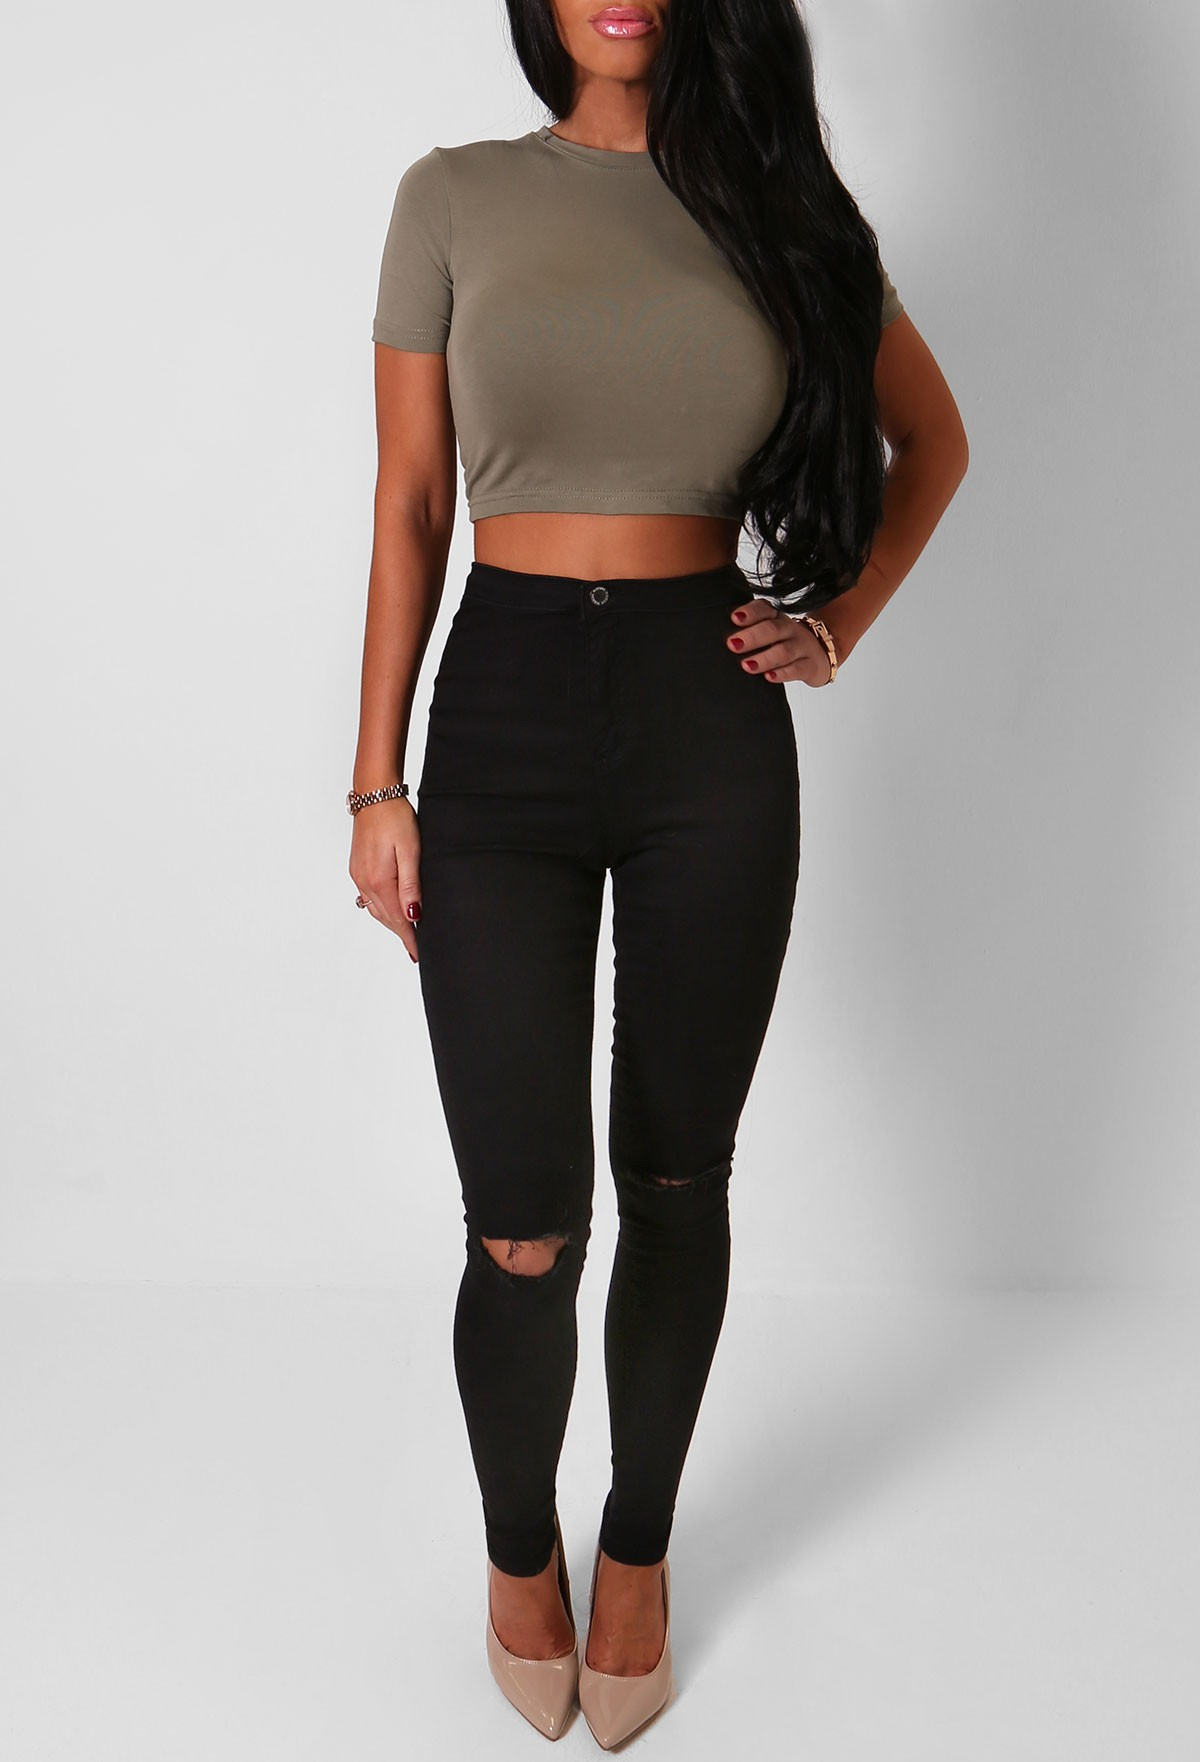 ASOS DESIGN Tall Rivington high waist denim jeggings in clean black. £ Freddy sculpting 6 way stretch smoothing high waist trouser. £ Bershka jegging. £ Noisy May low rise skinny jegging. £ ASOS DESIGN Rivington high waisted cord jegging in black. £ Vero Moda Tall Slim Jegging.